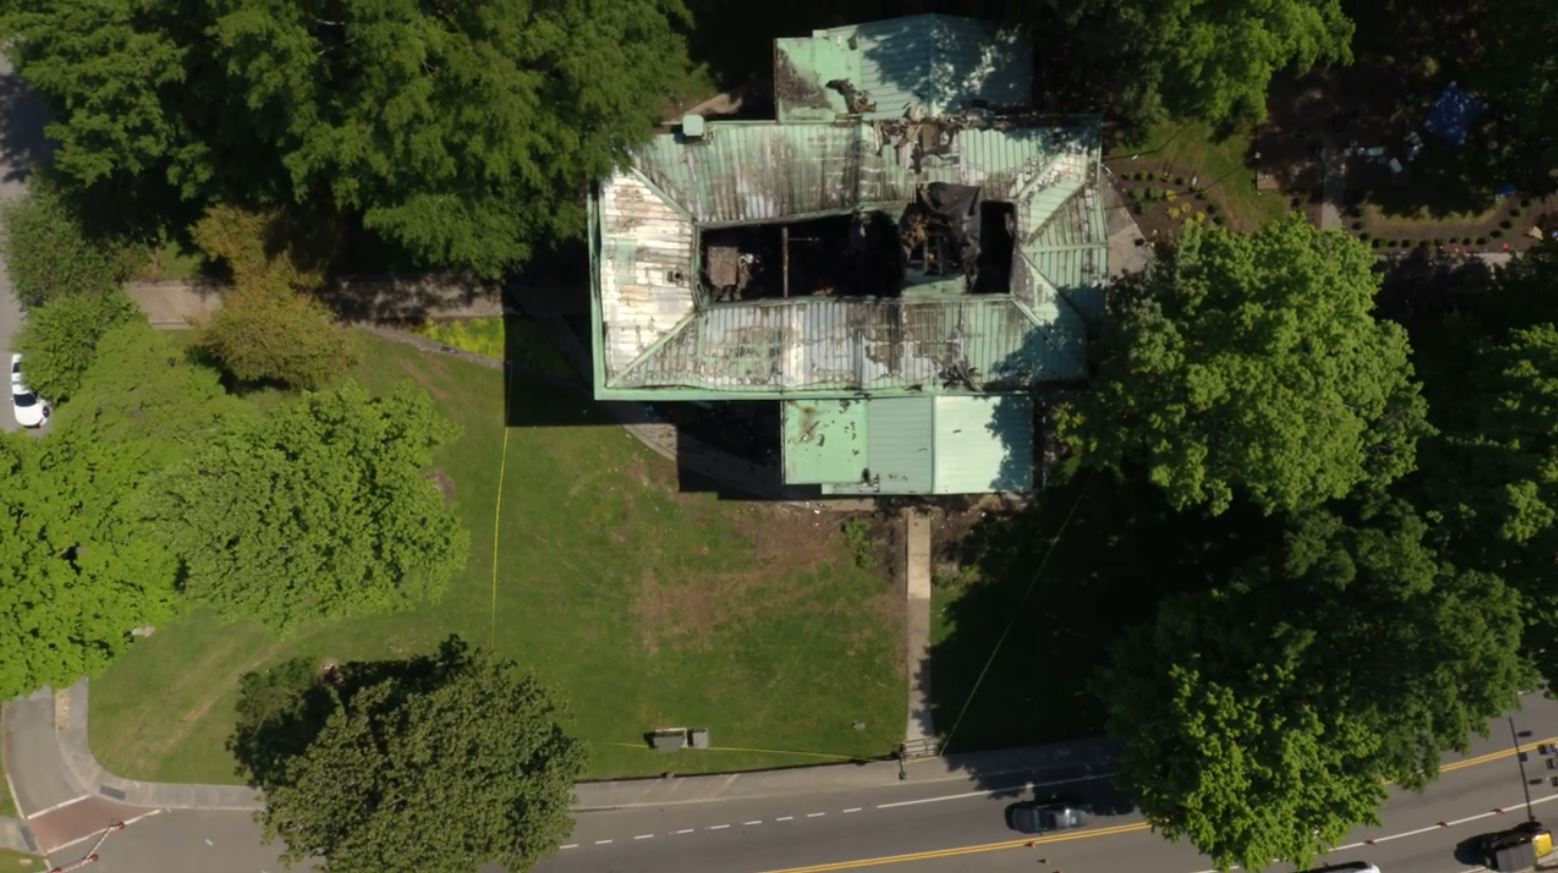 DRONE IMAGE_Loudon Co Courthouse fire damage_WLAF RADIO_3_0425_1556233178607.JPG.jpg